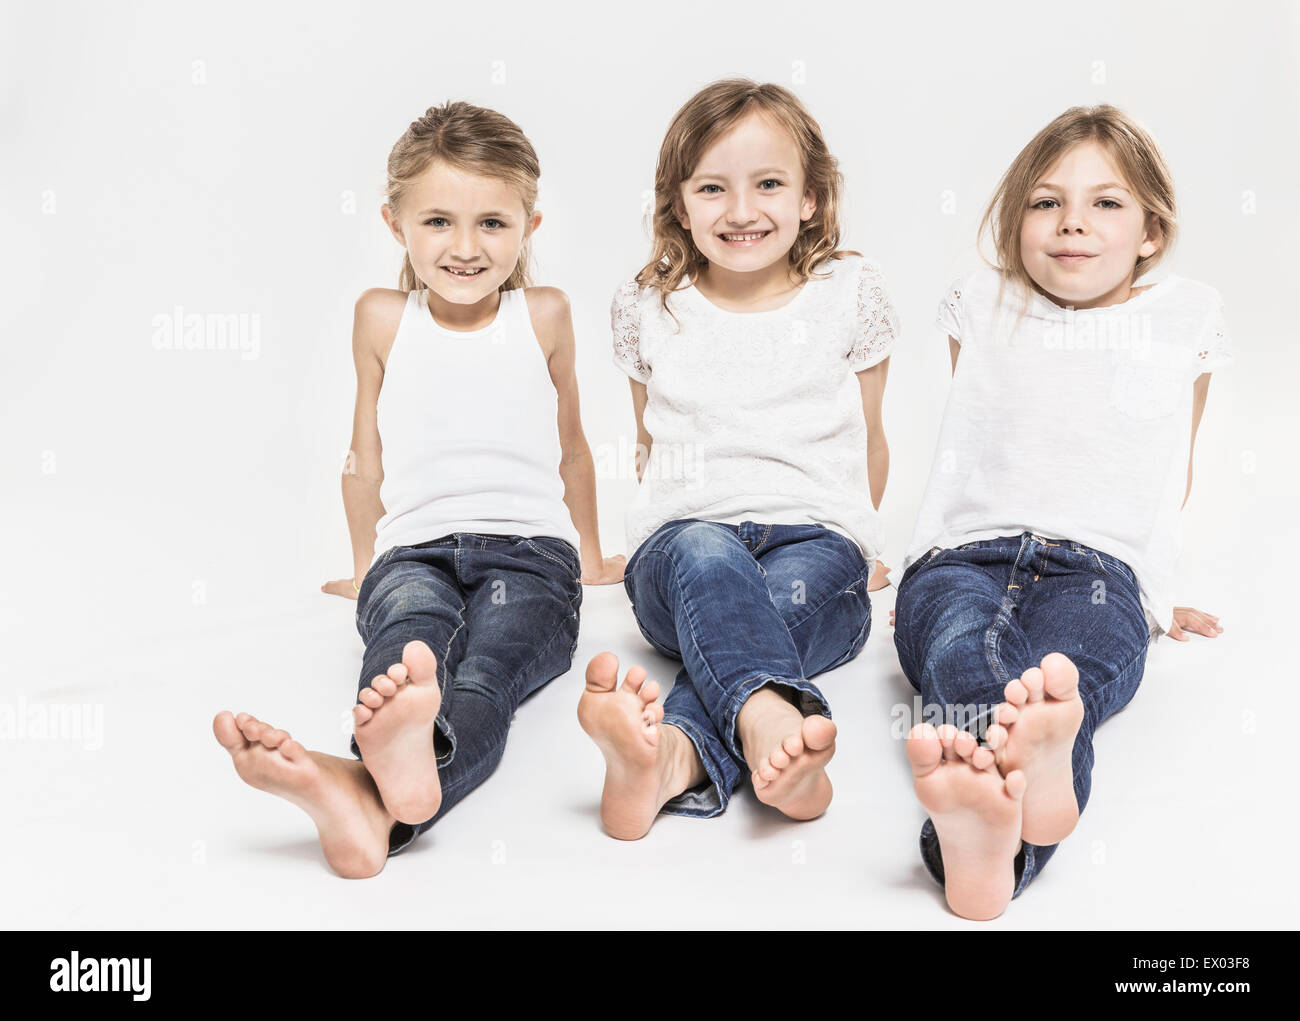 Portrait of girls with legs outstretched - Stock Image